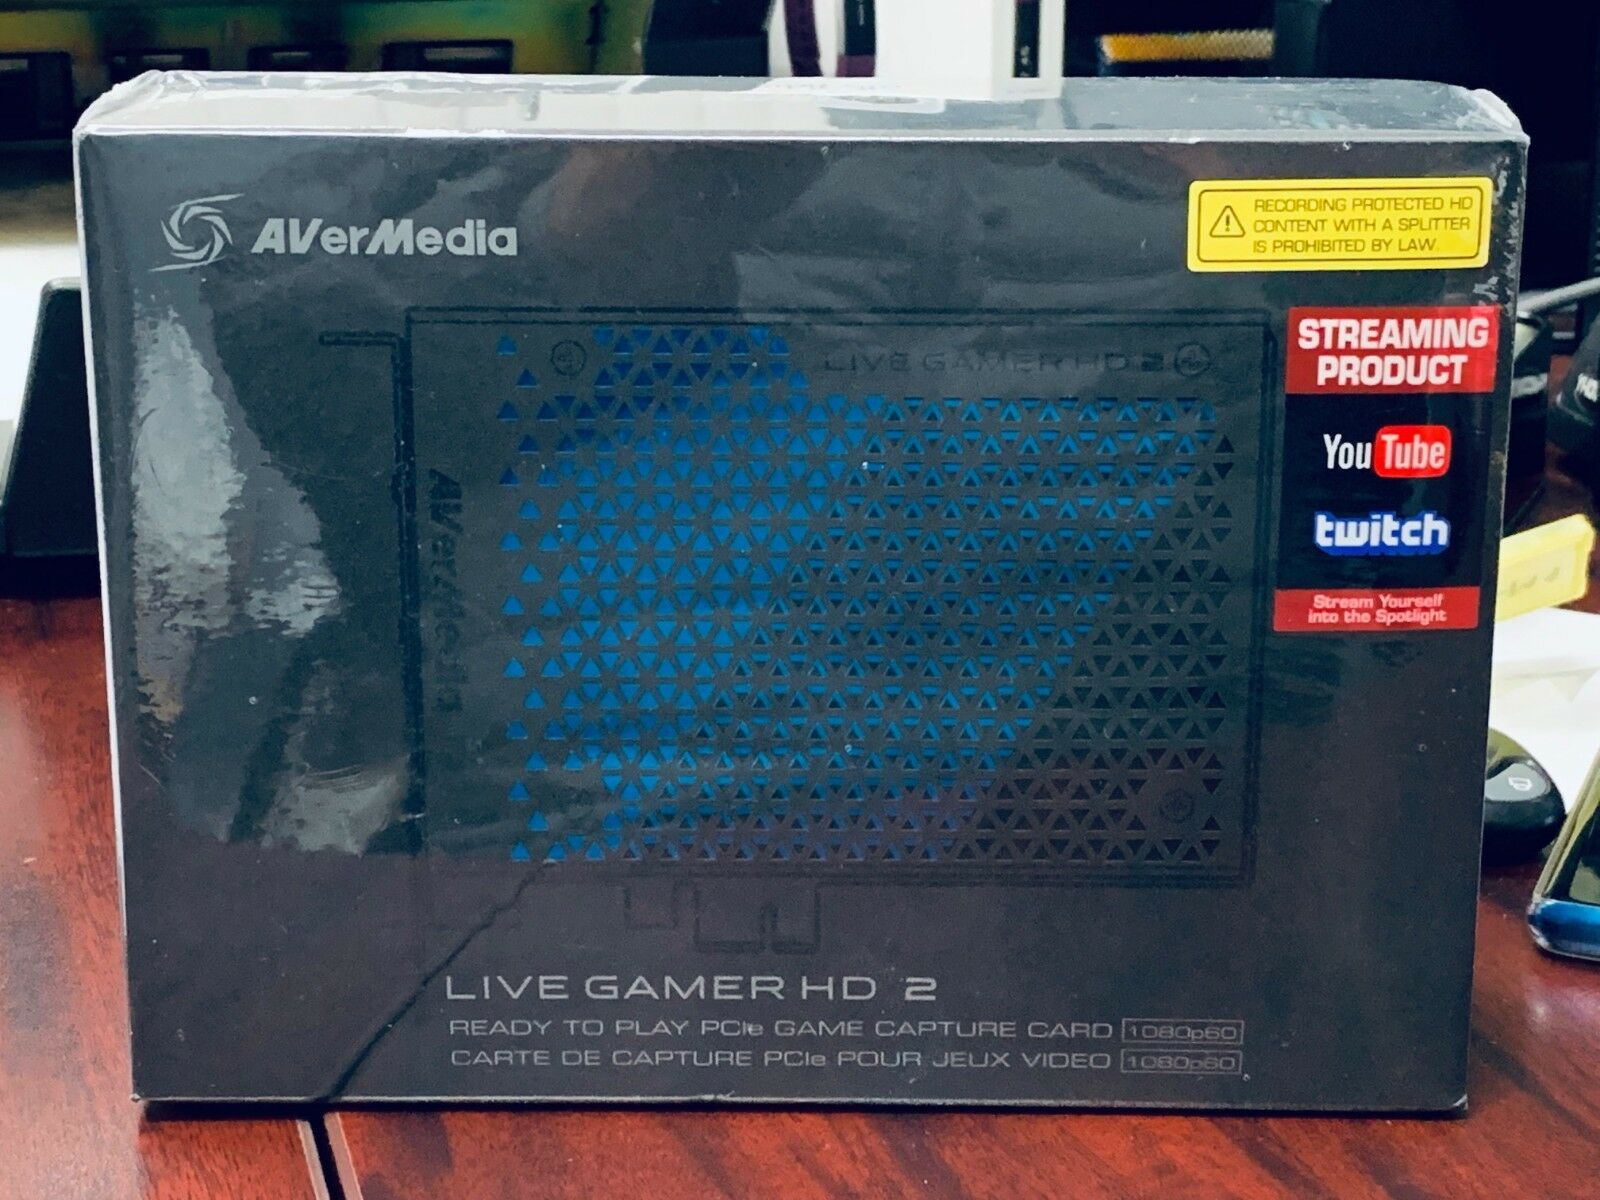 AVerMedia GC570 Live Gamer HD 2 Video Cards